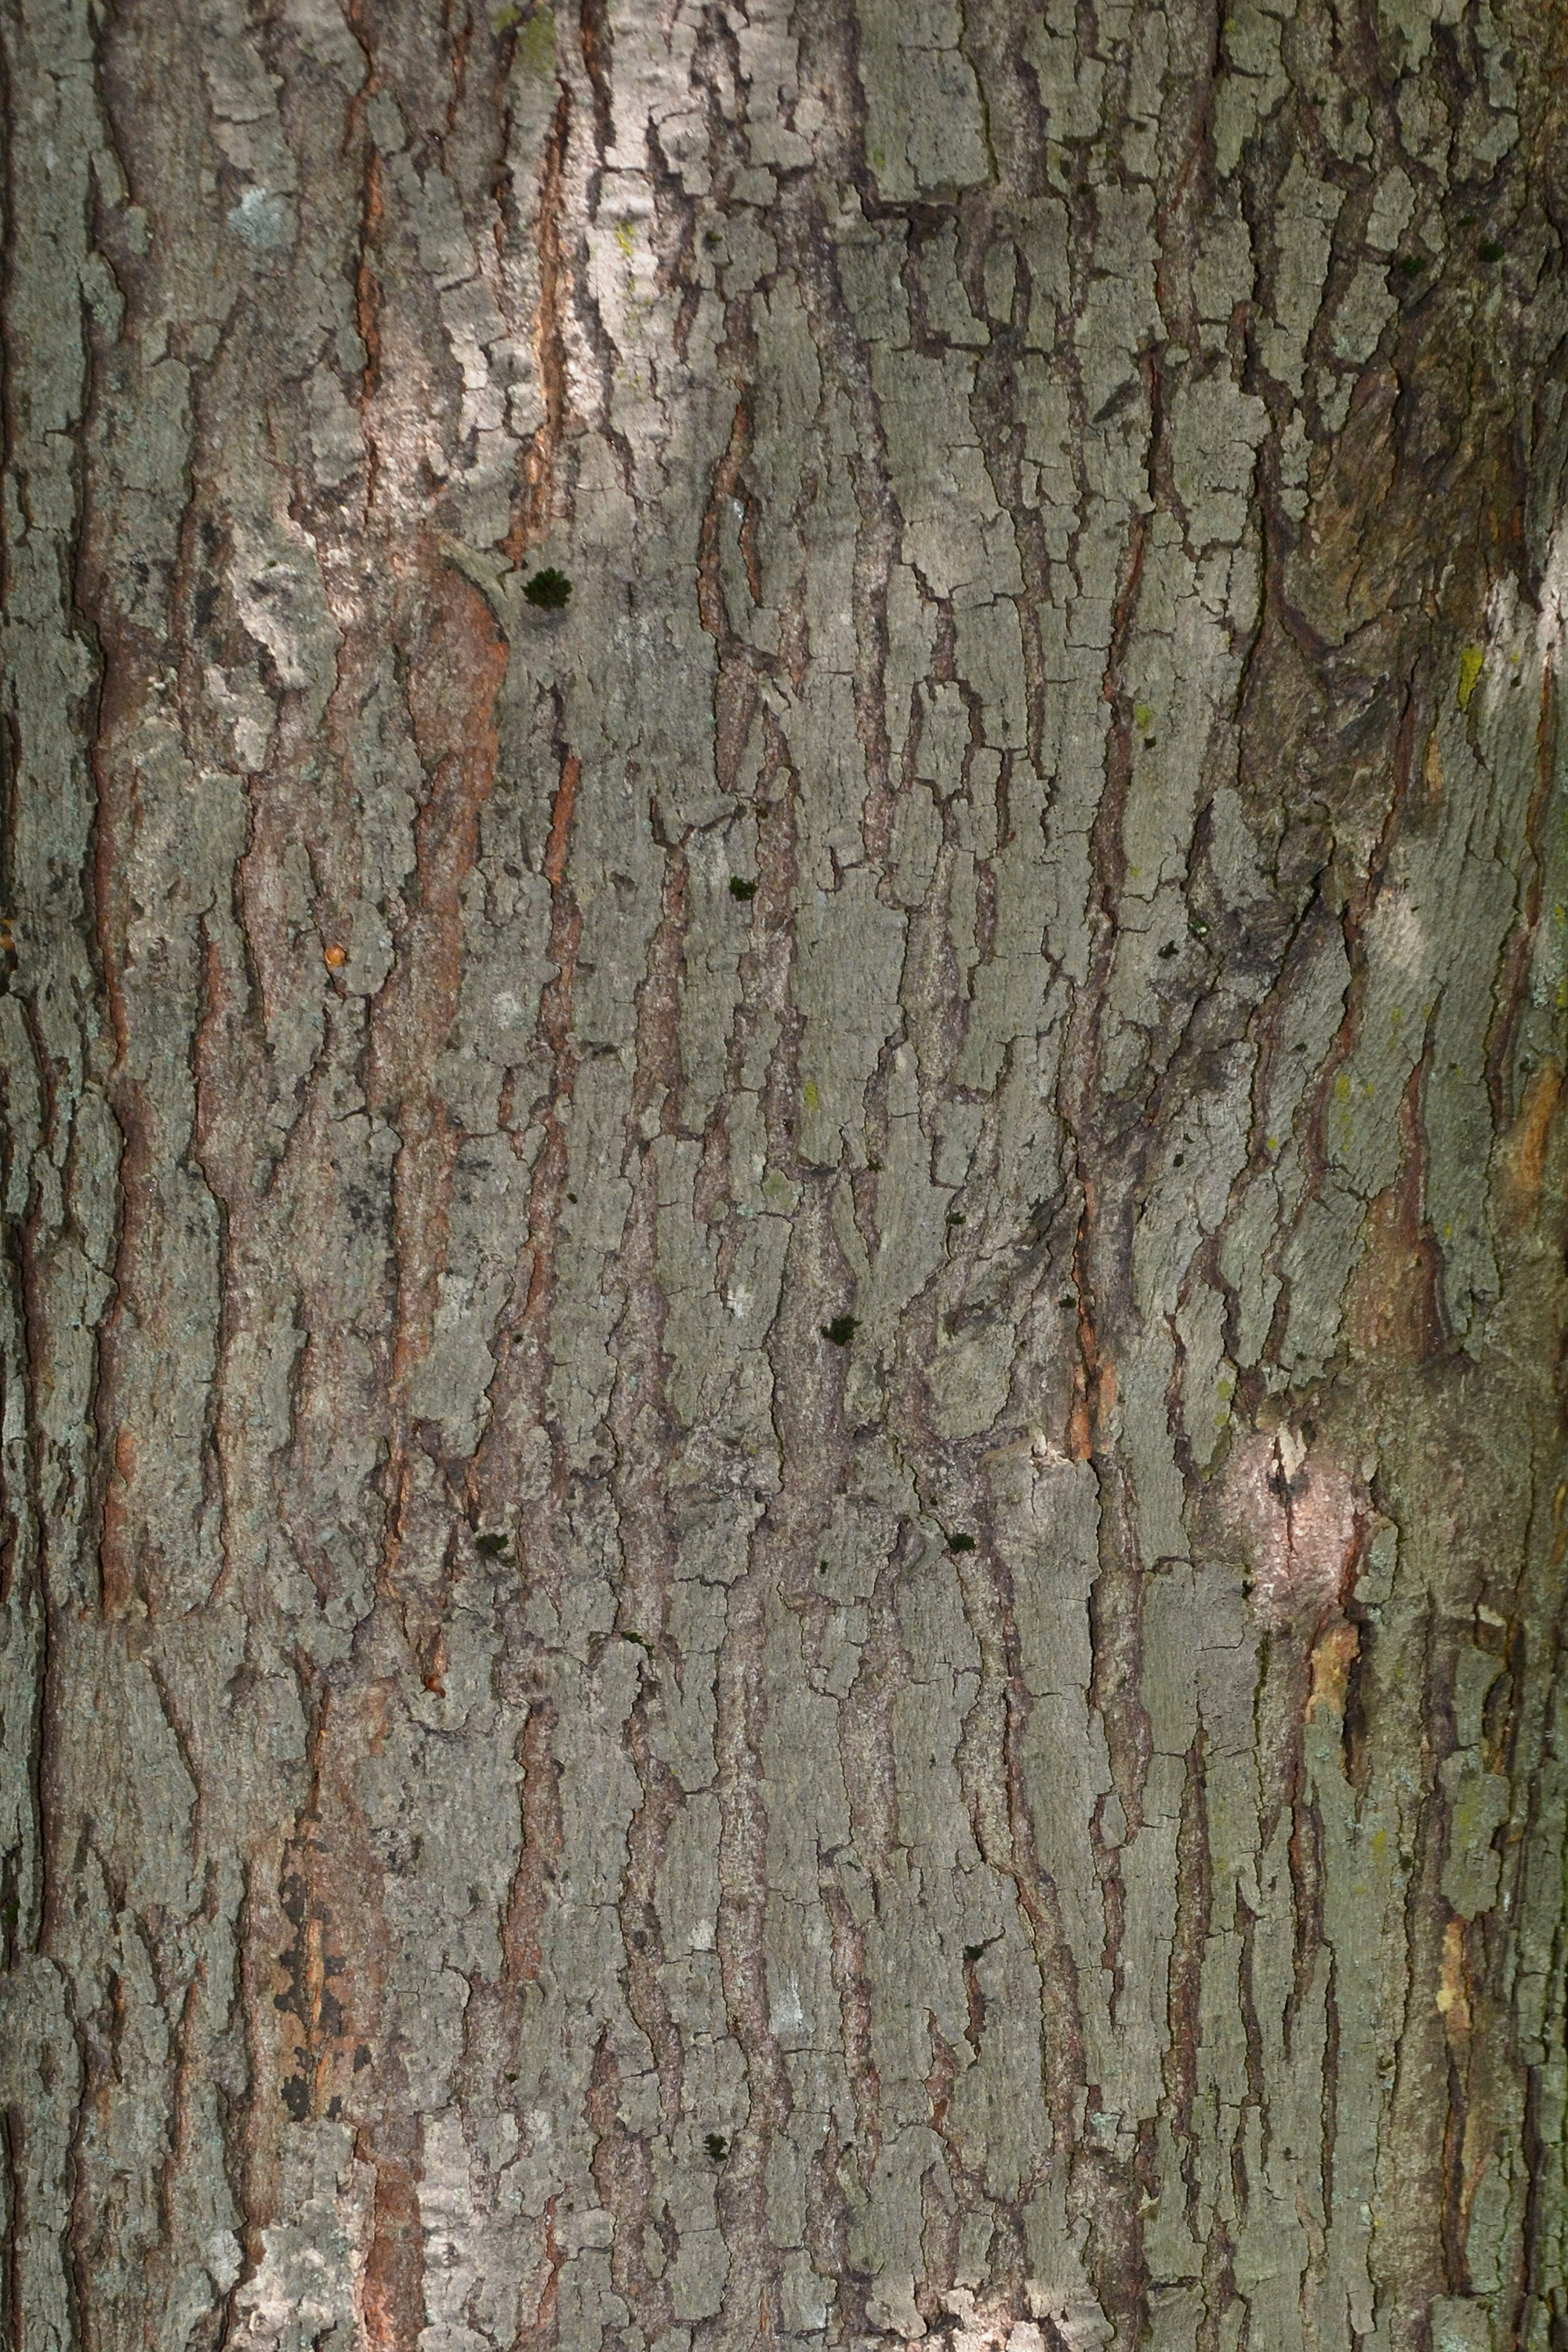 Bark of red maple photo